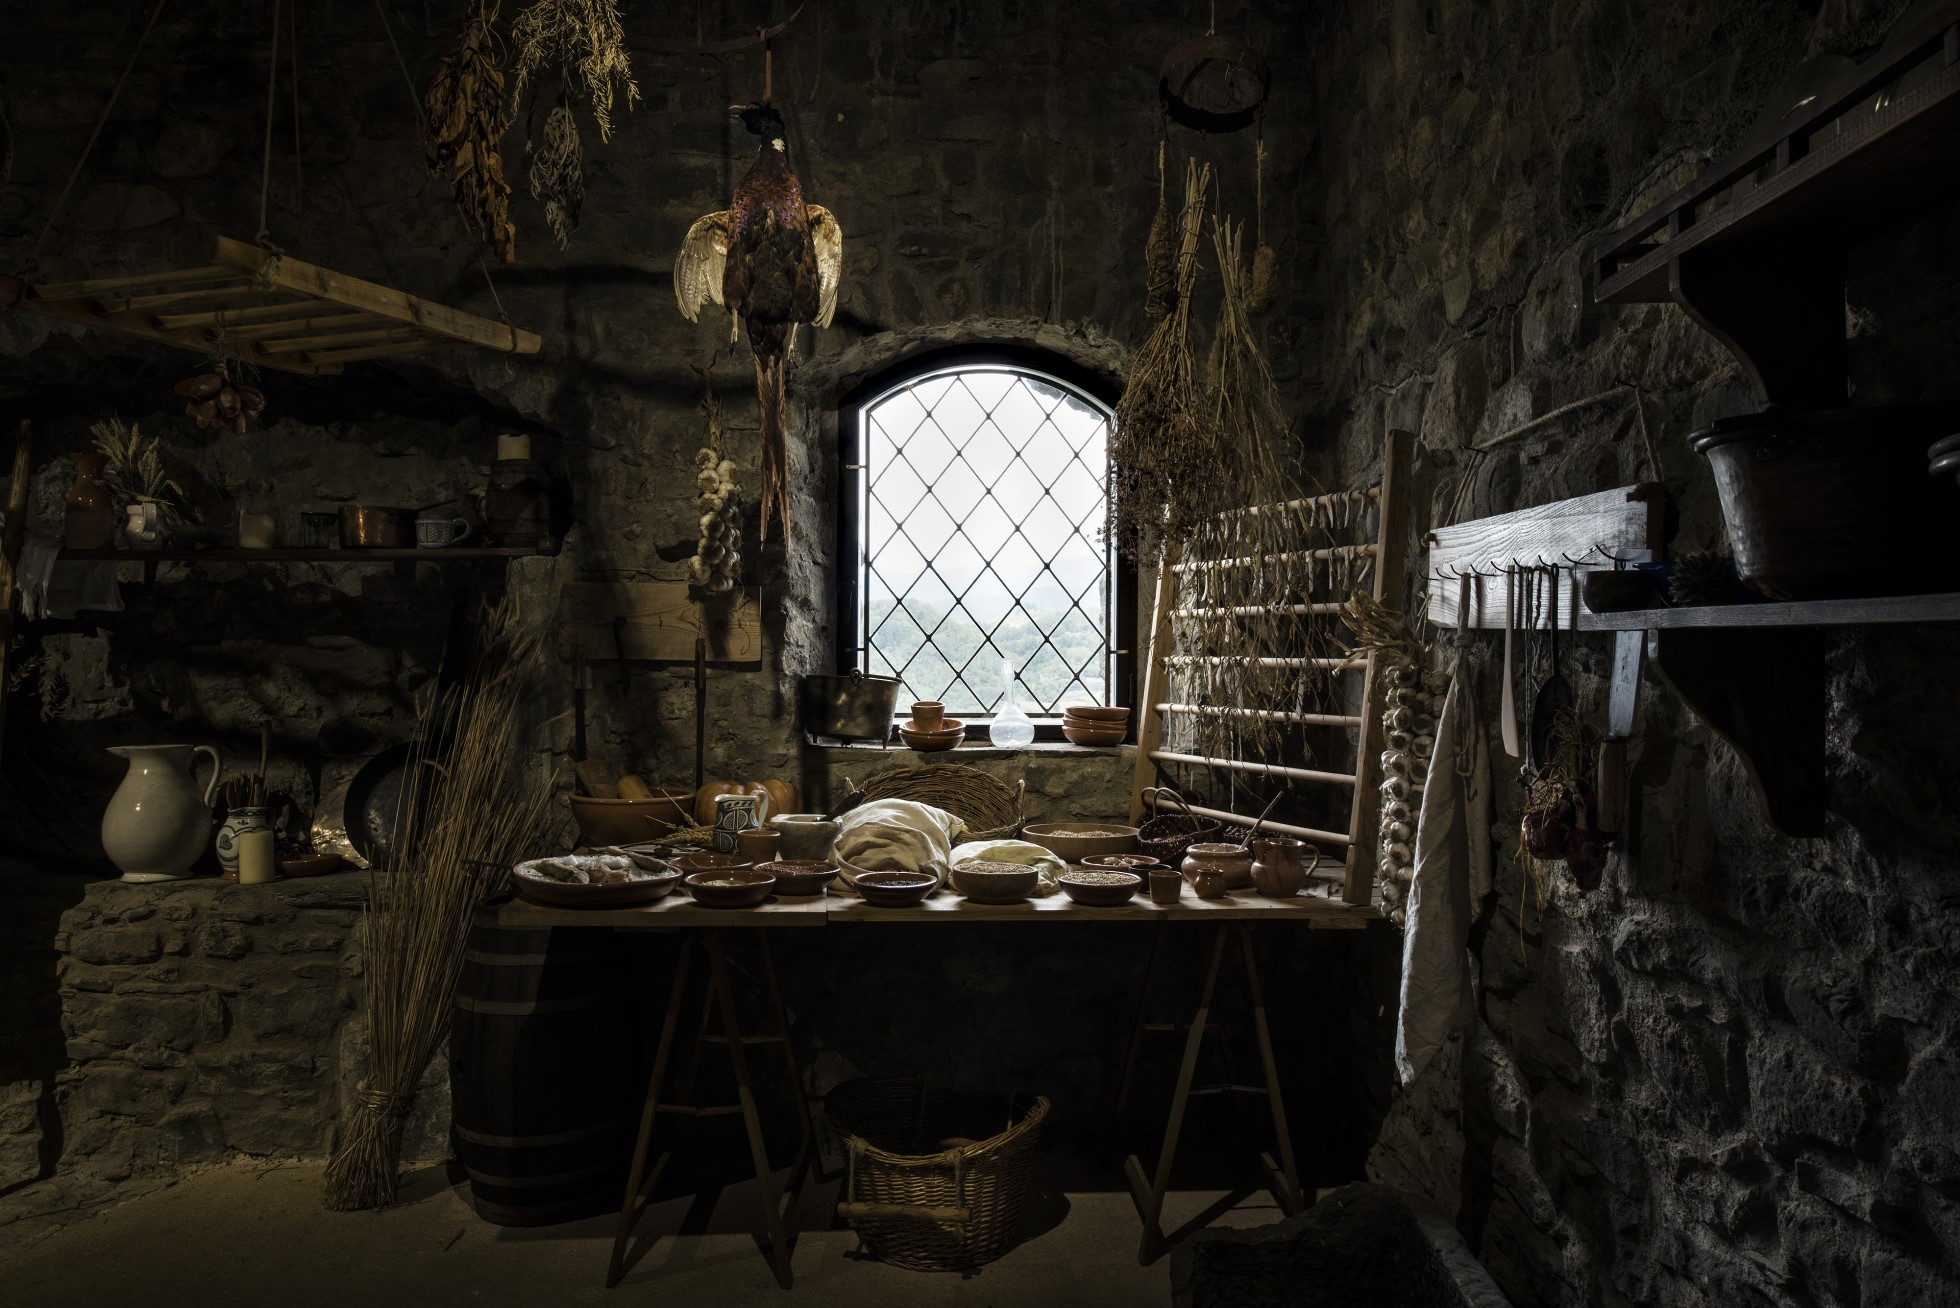 Photograph shows a dark room with stone walls. In the centre of the shot is a table with various bowls and cooking utensils below a window. In the There is rack on the right hand side. Below the table is a basket. Hanging from the ceiling are various dried herbs and a pheasant. To the left a grey jug a copper pot and other equipment sits on shelves.